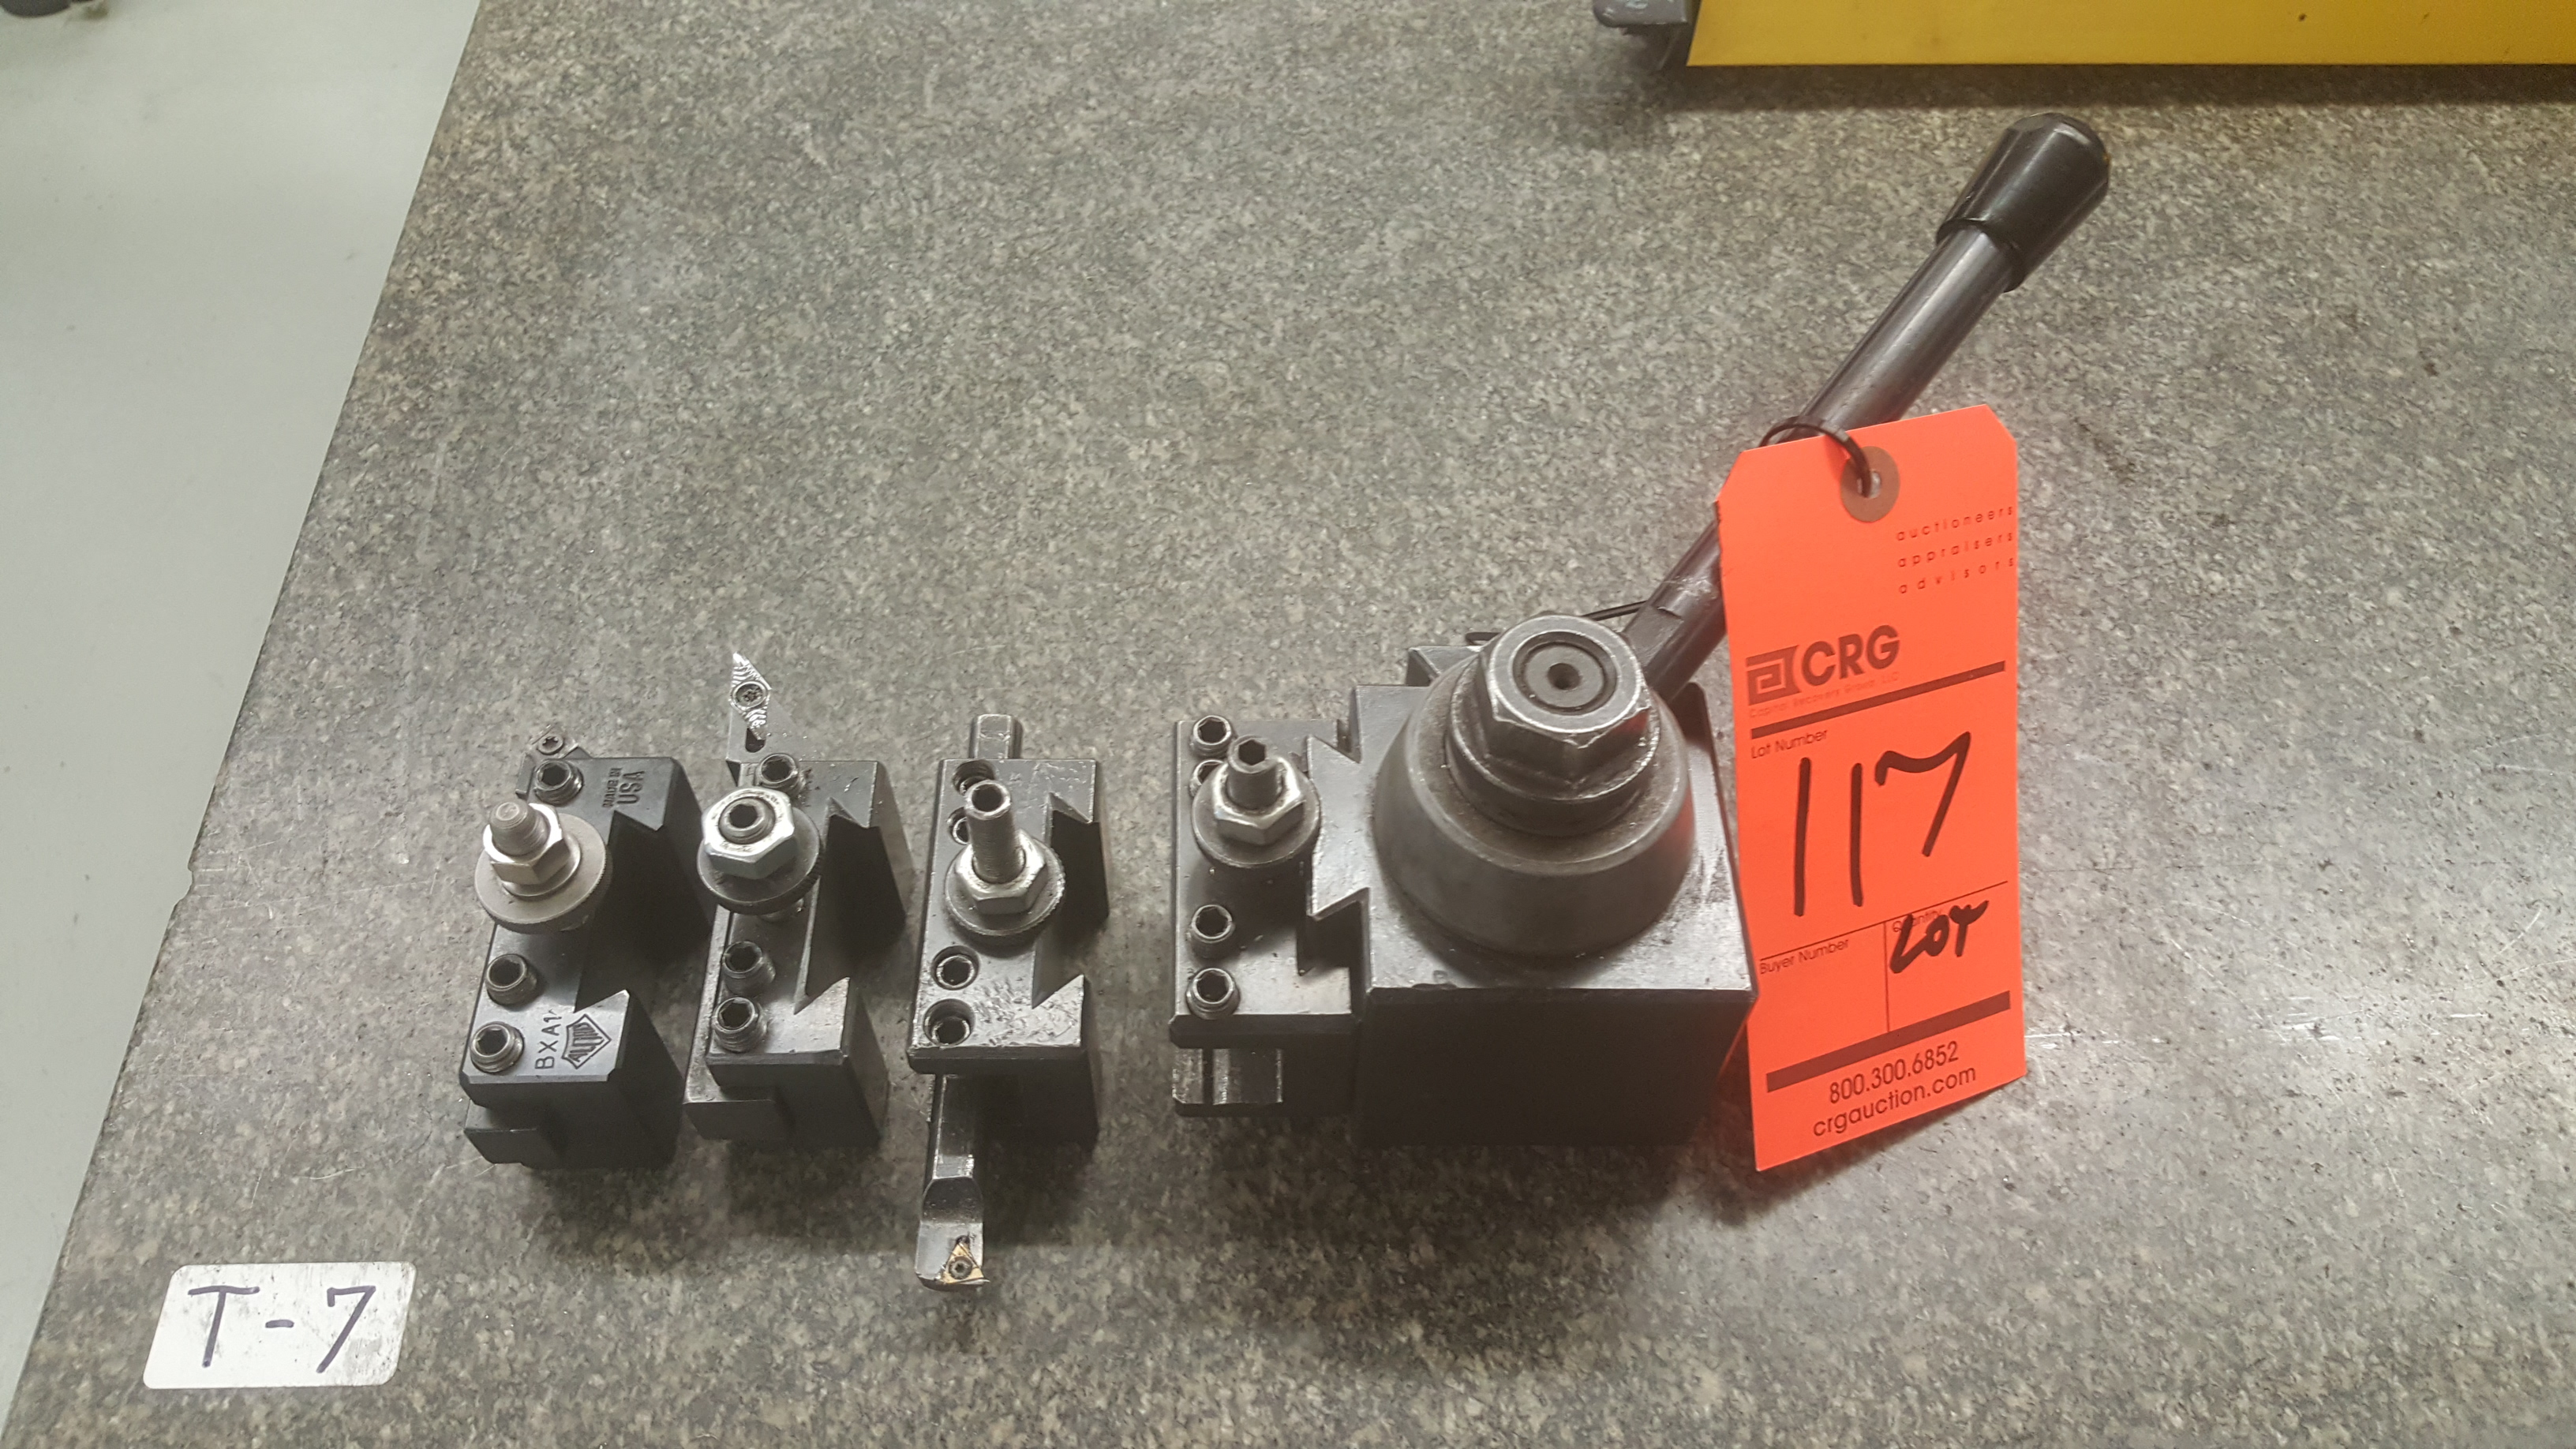 Lot 117 - Compound tool holder